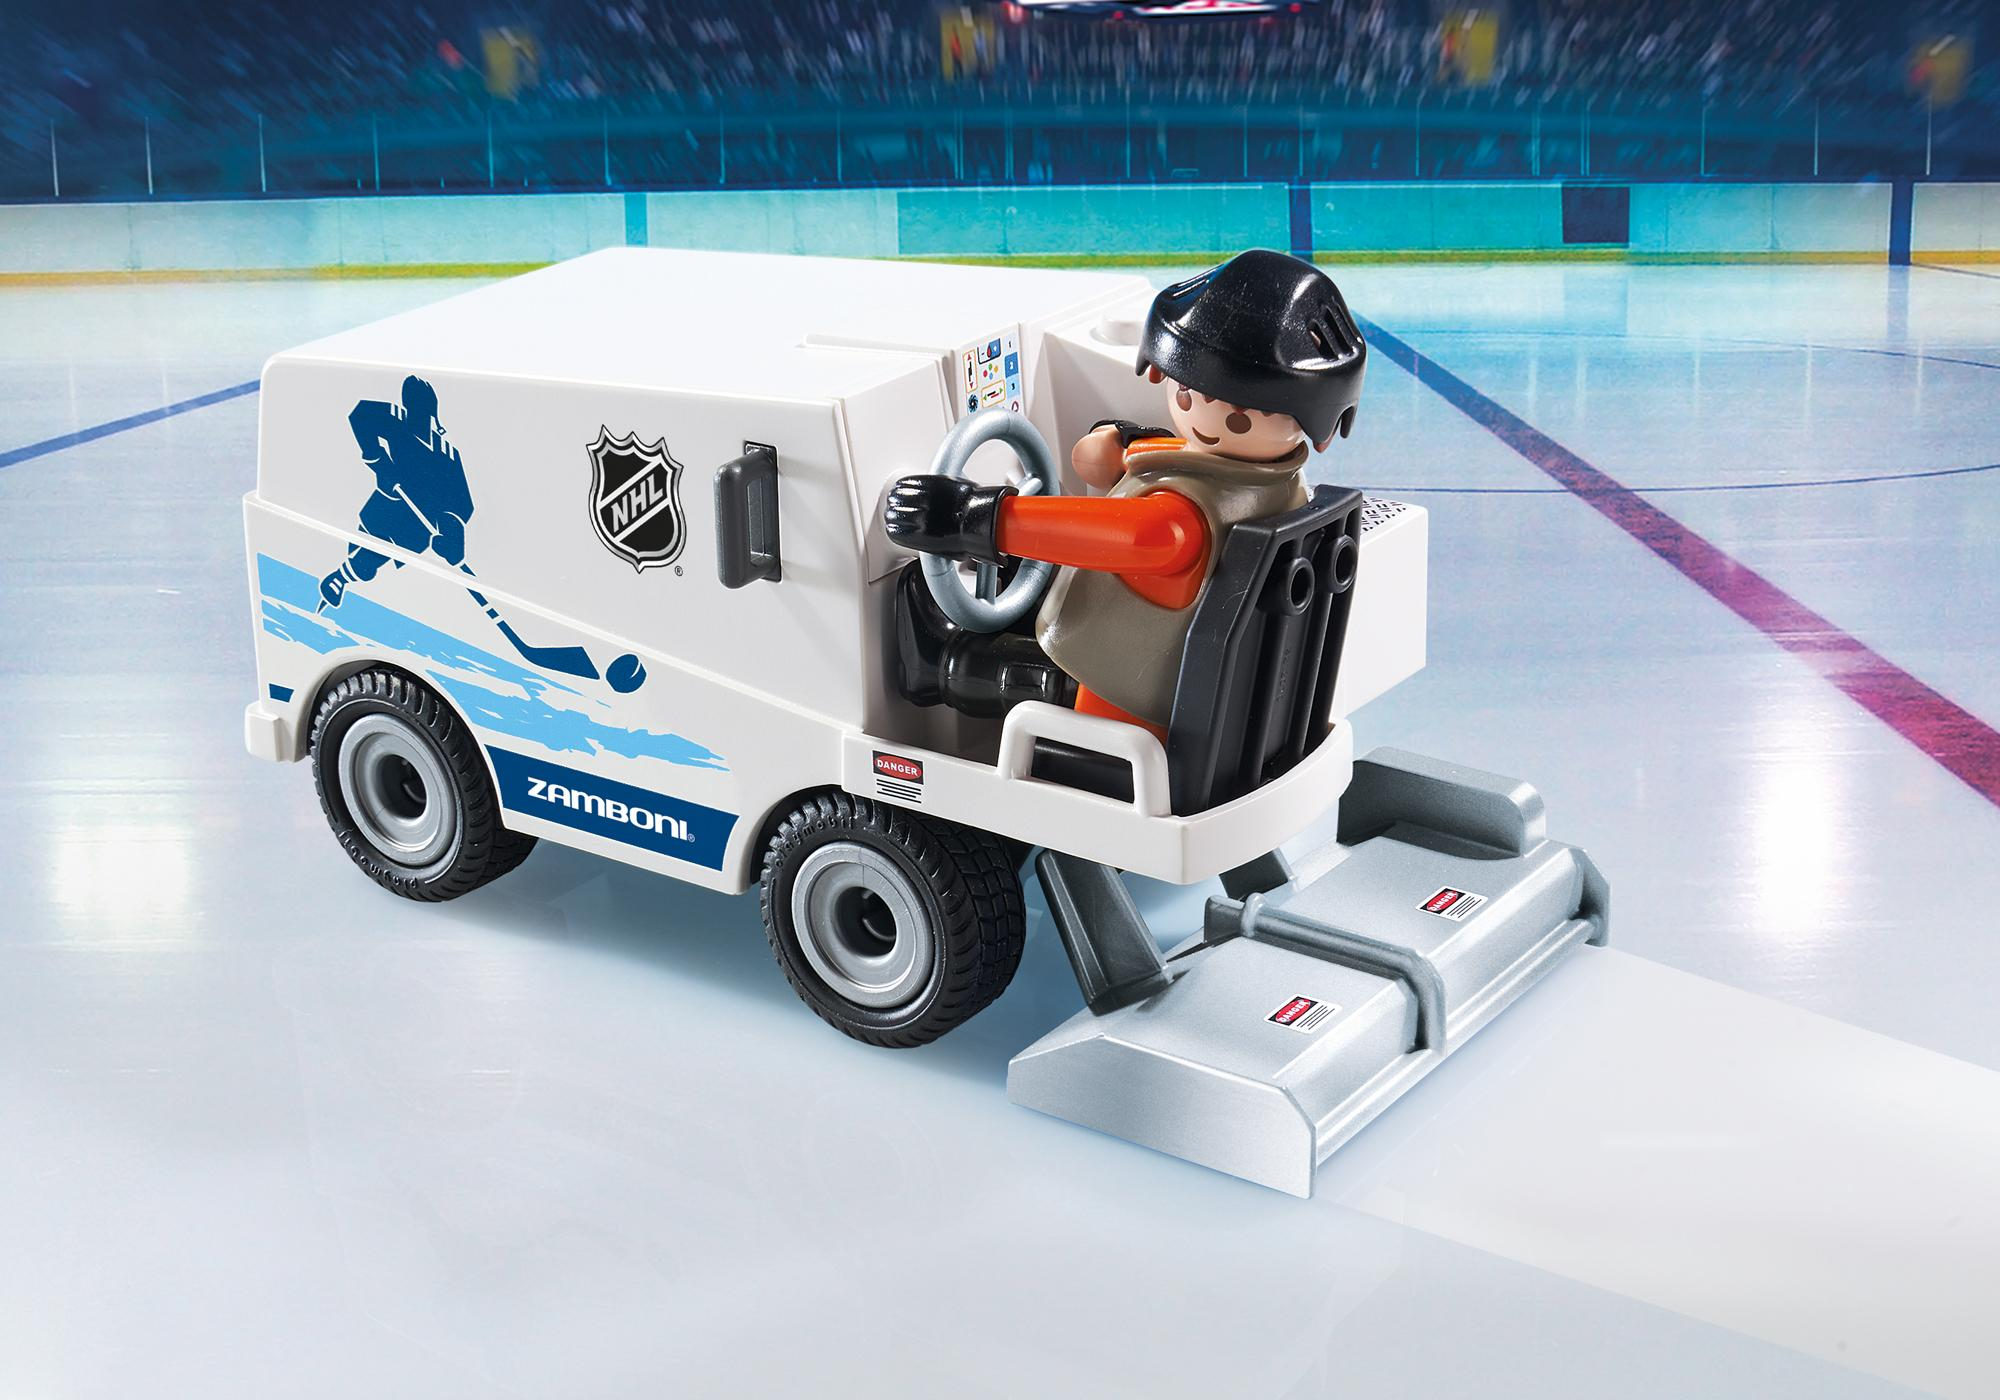 http://media.playmobil.com/i/playmobil/9213_product_extra1/NHL™ Zamboni® Machine